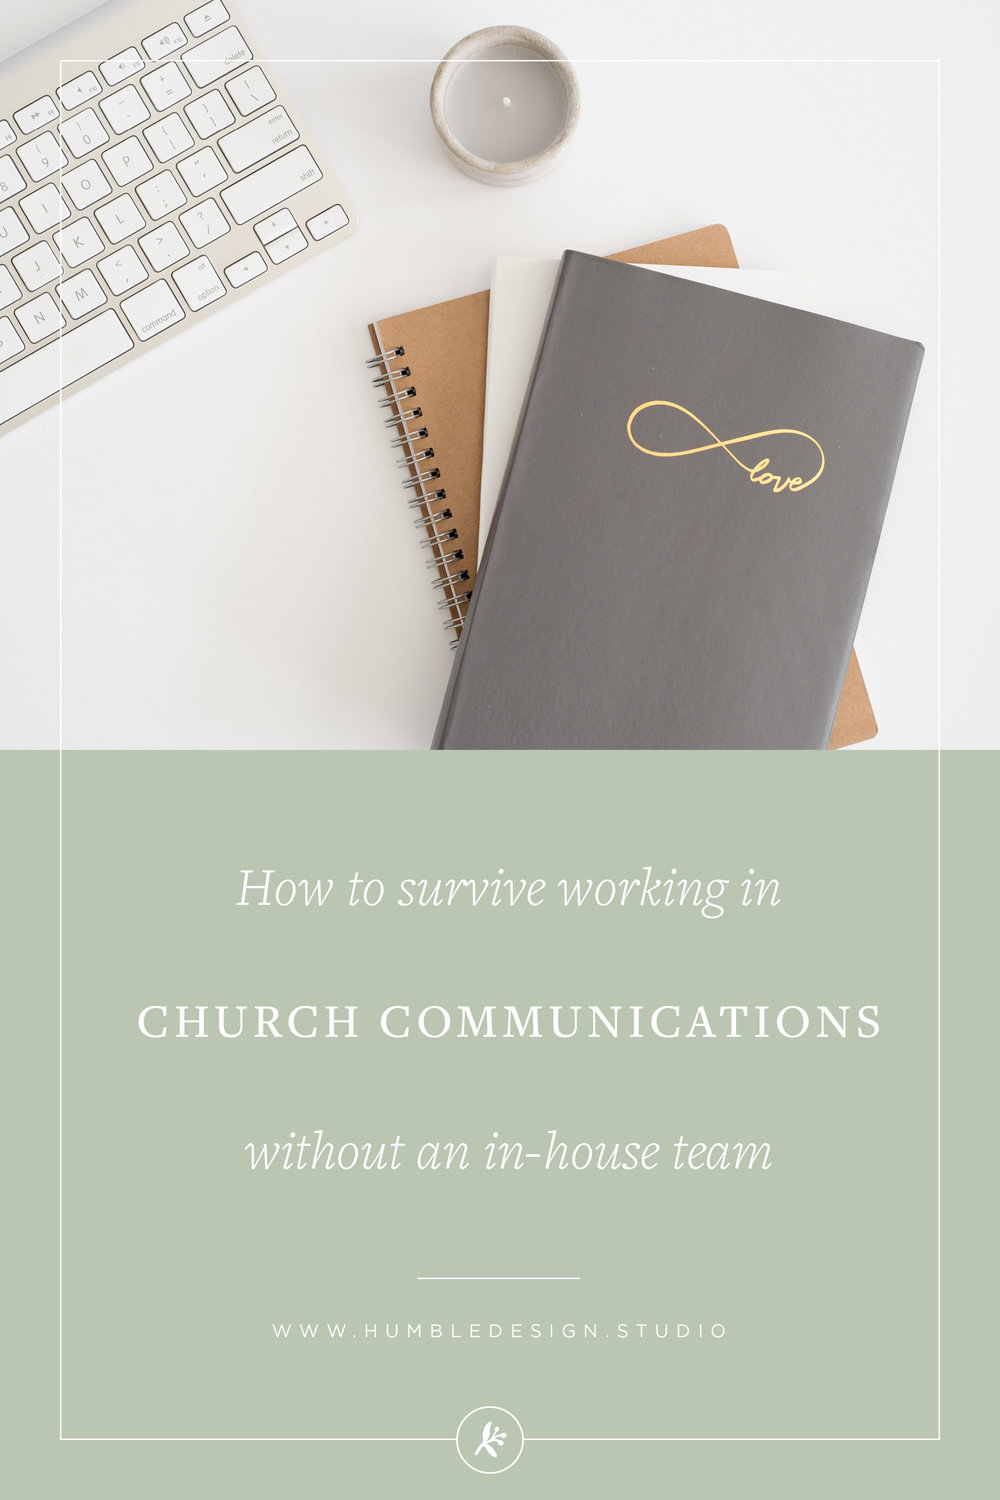 Church Communications In-House Team Hiring Tips